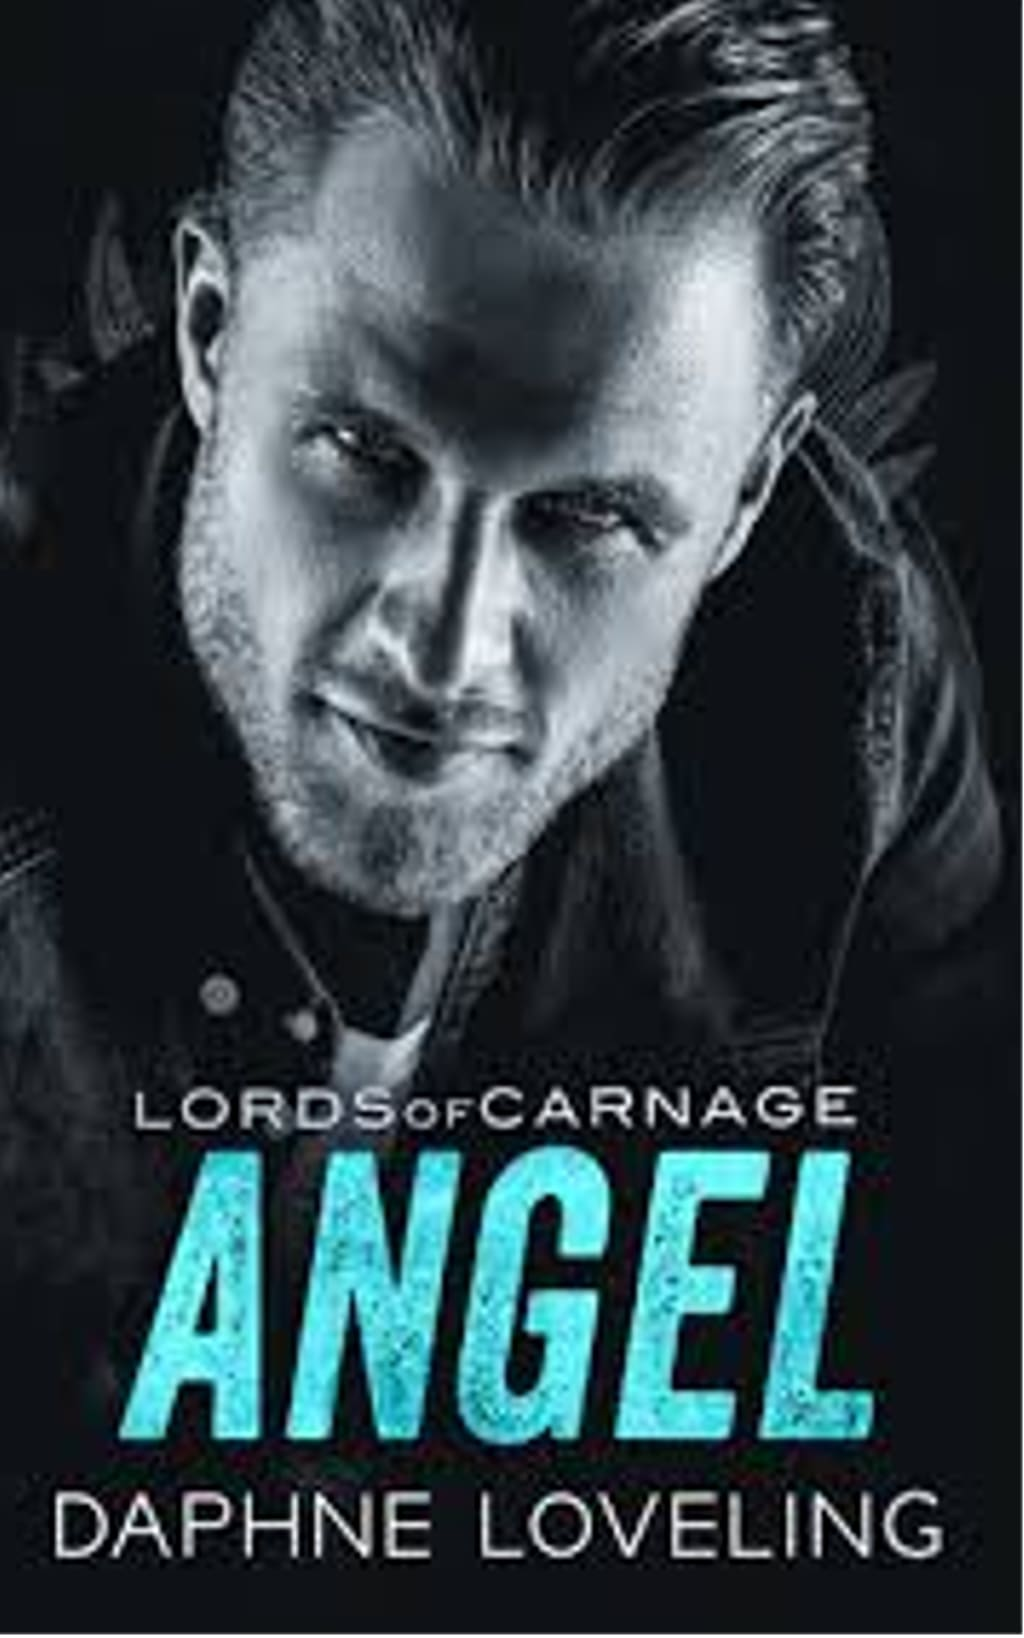 Romance Reviews: Daphne Loveling's 'Lords of Carnage'